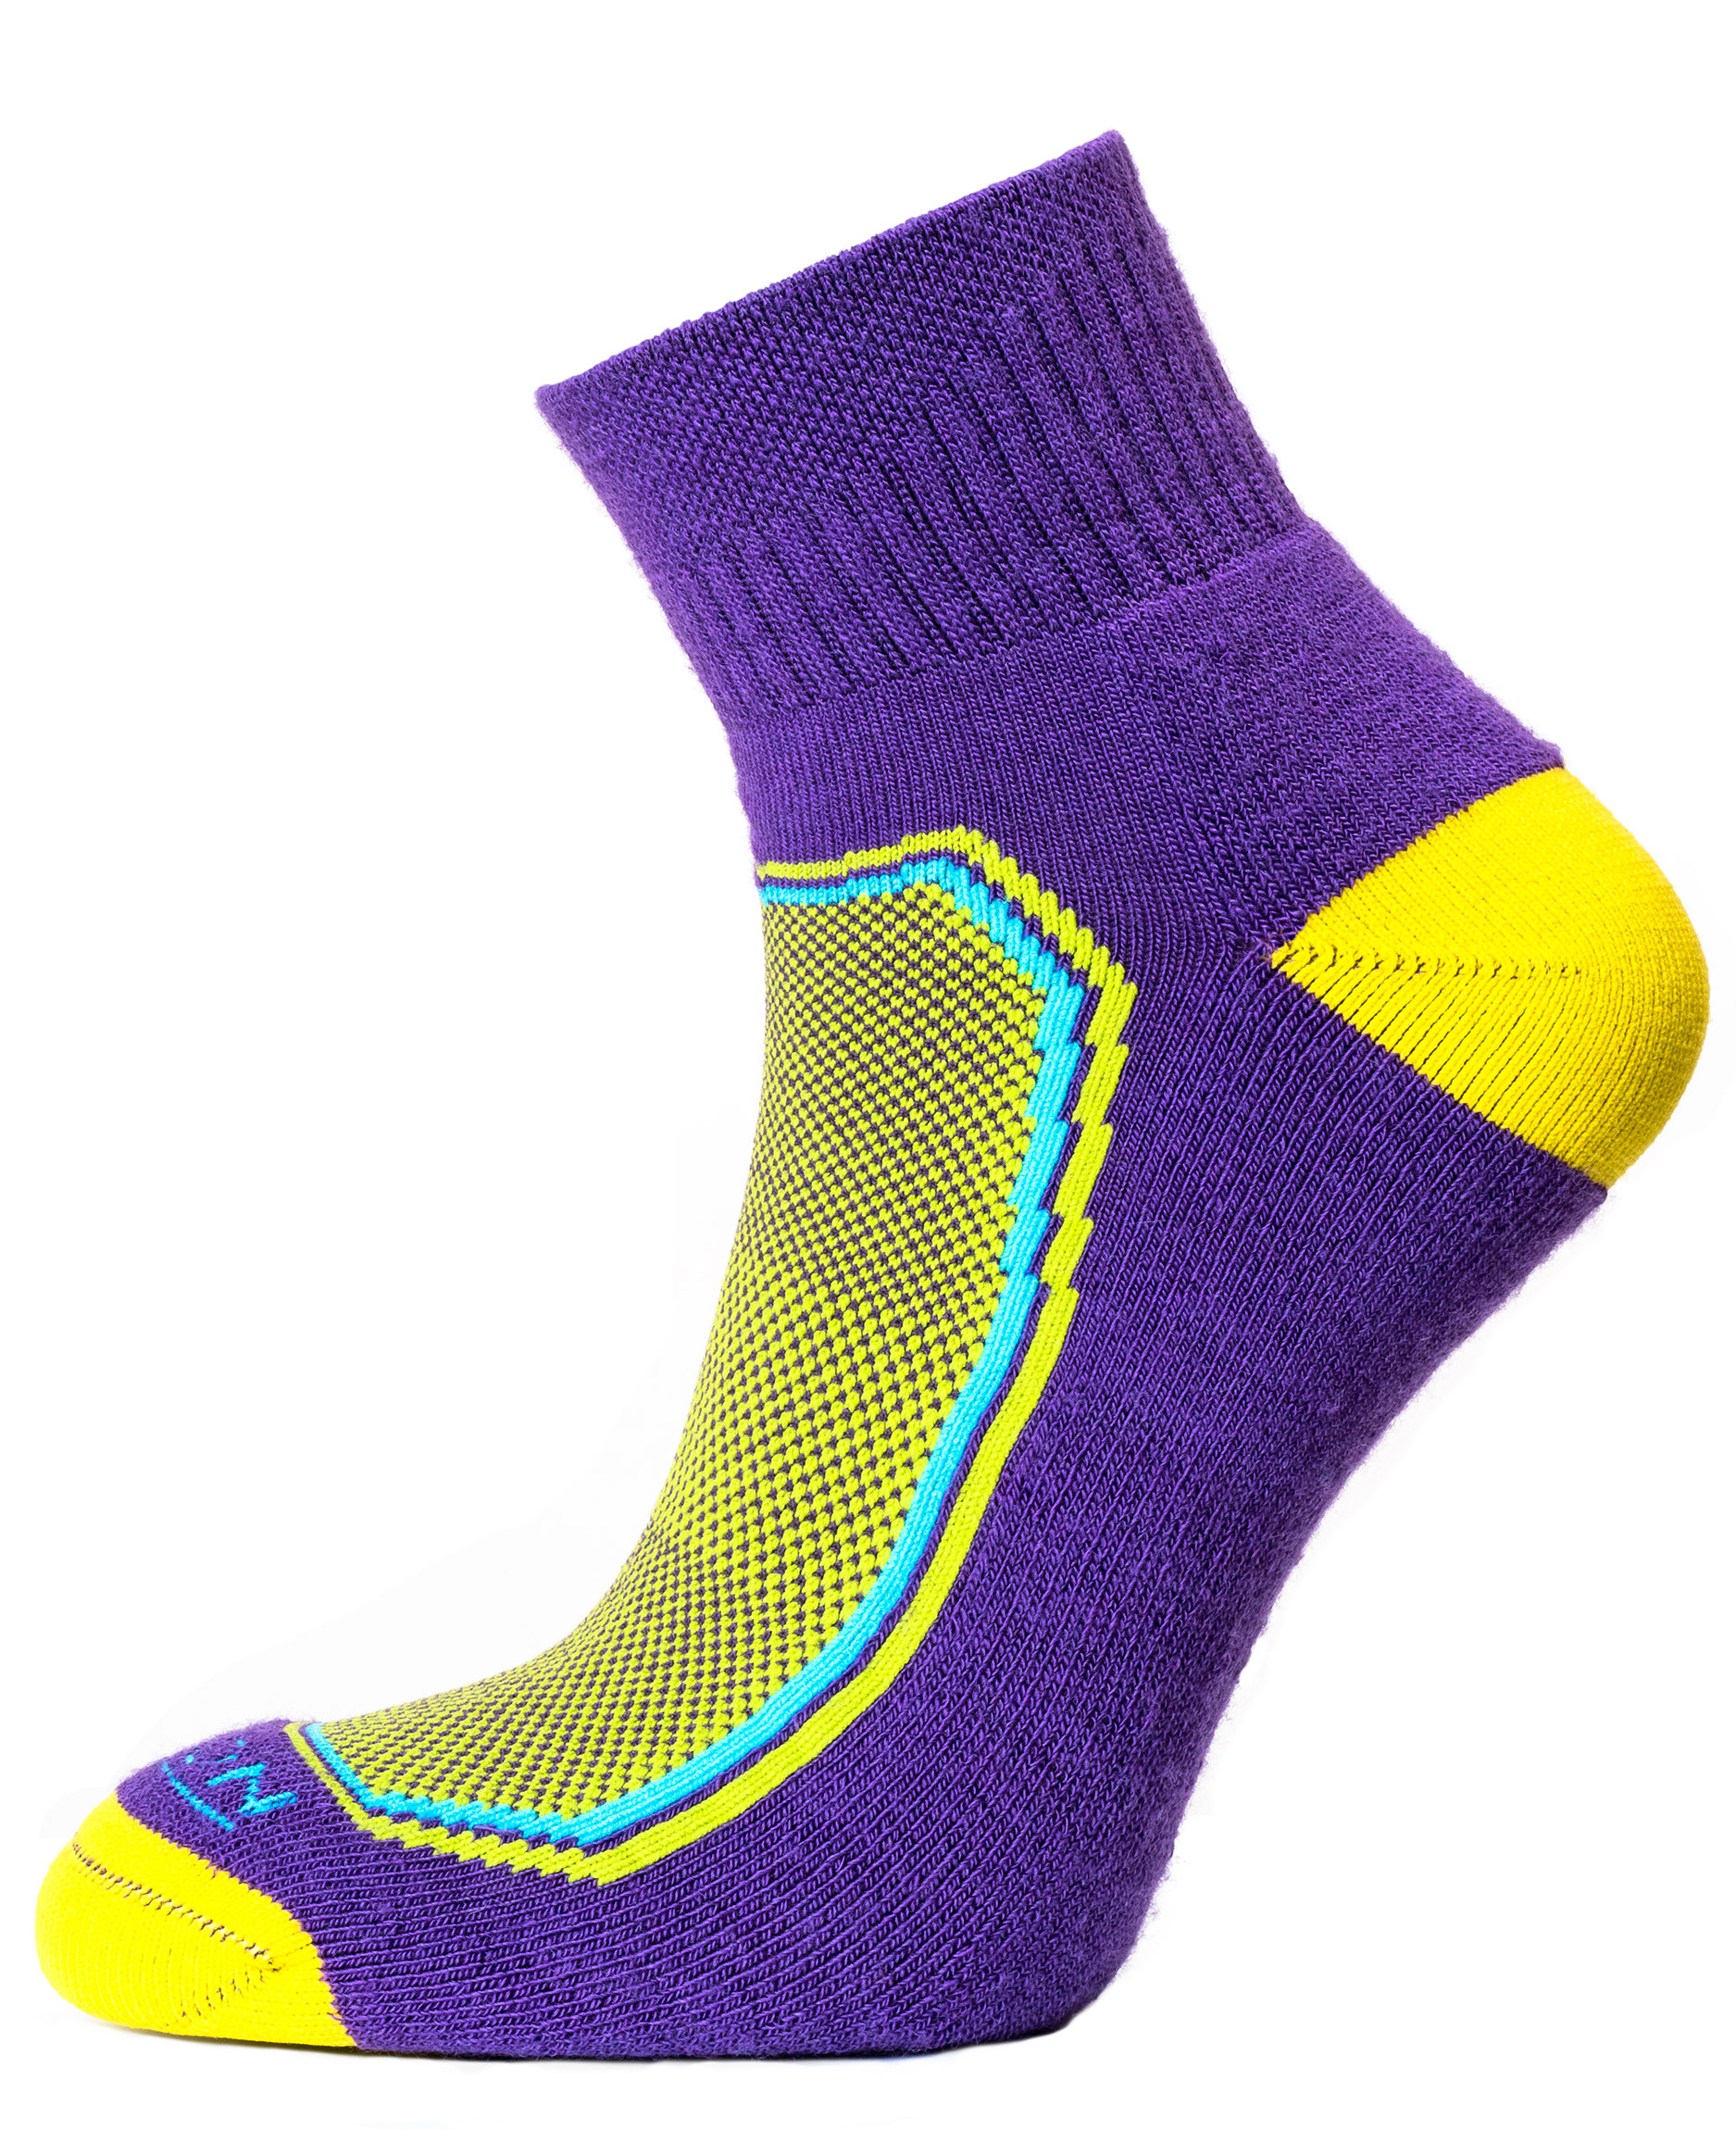 Quarter-Purple-Yellow